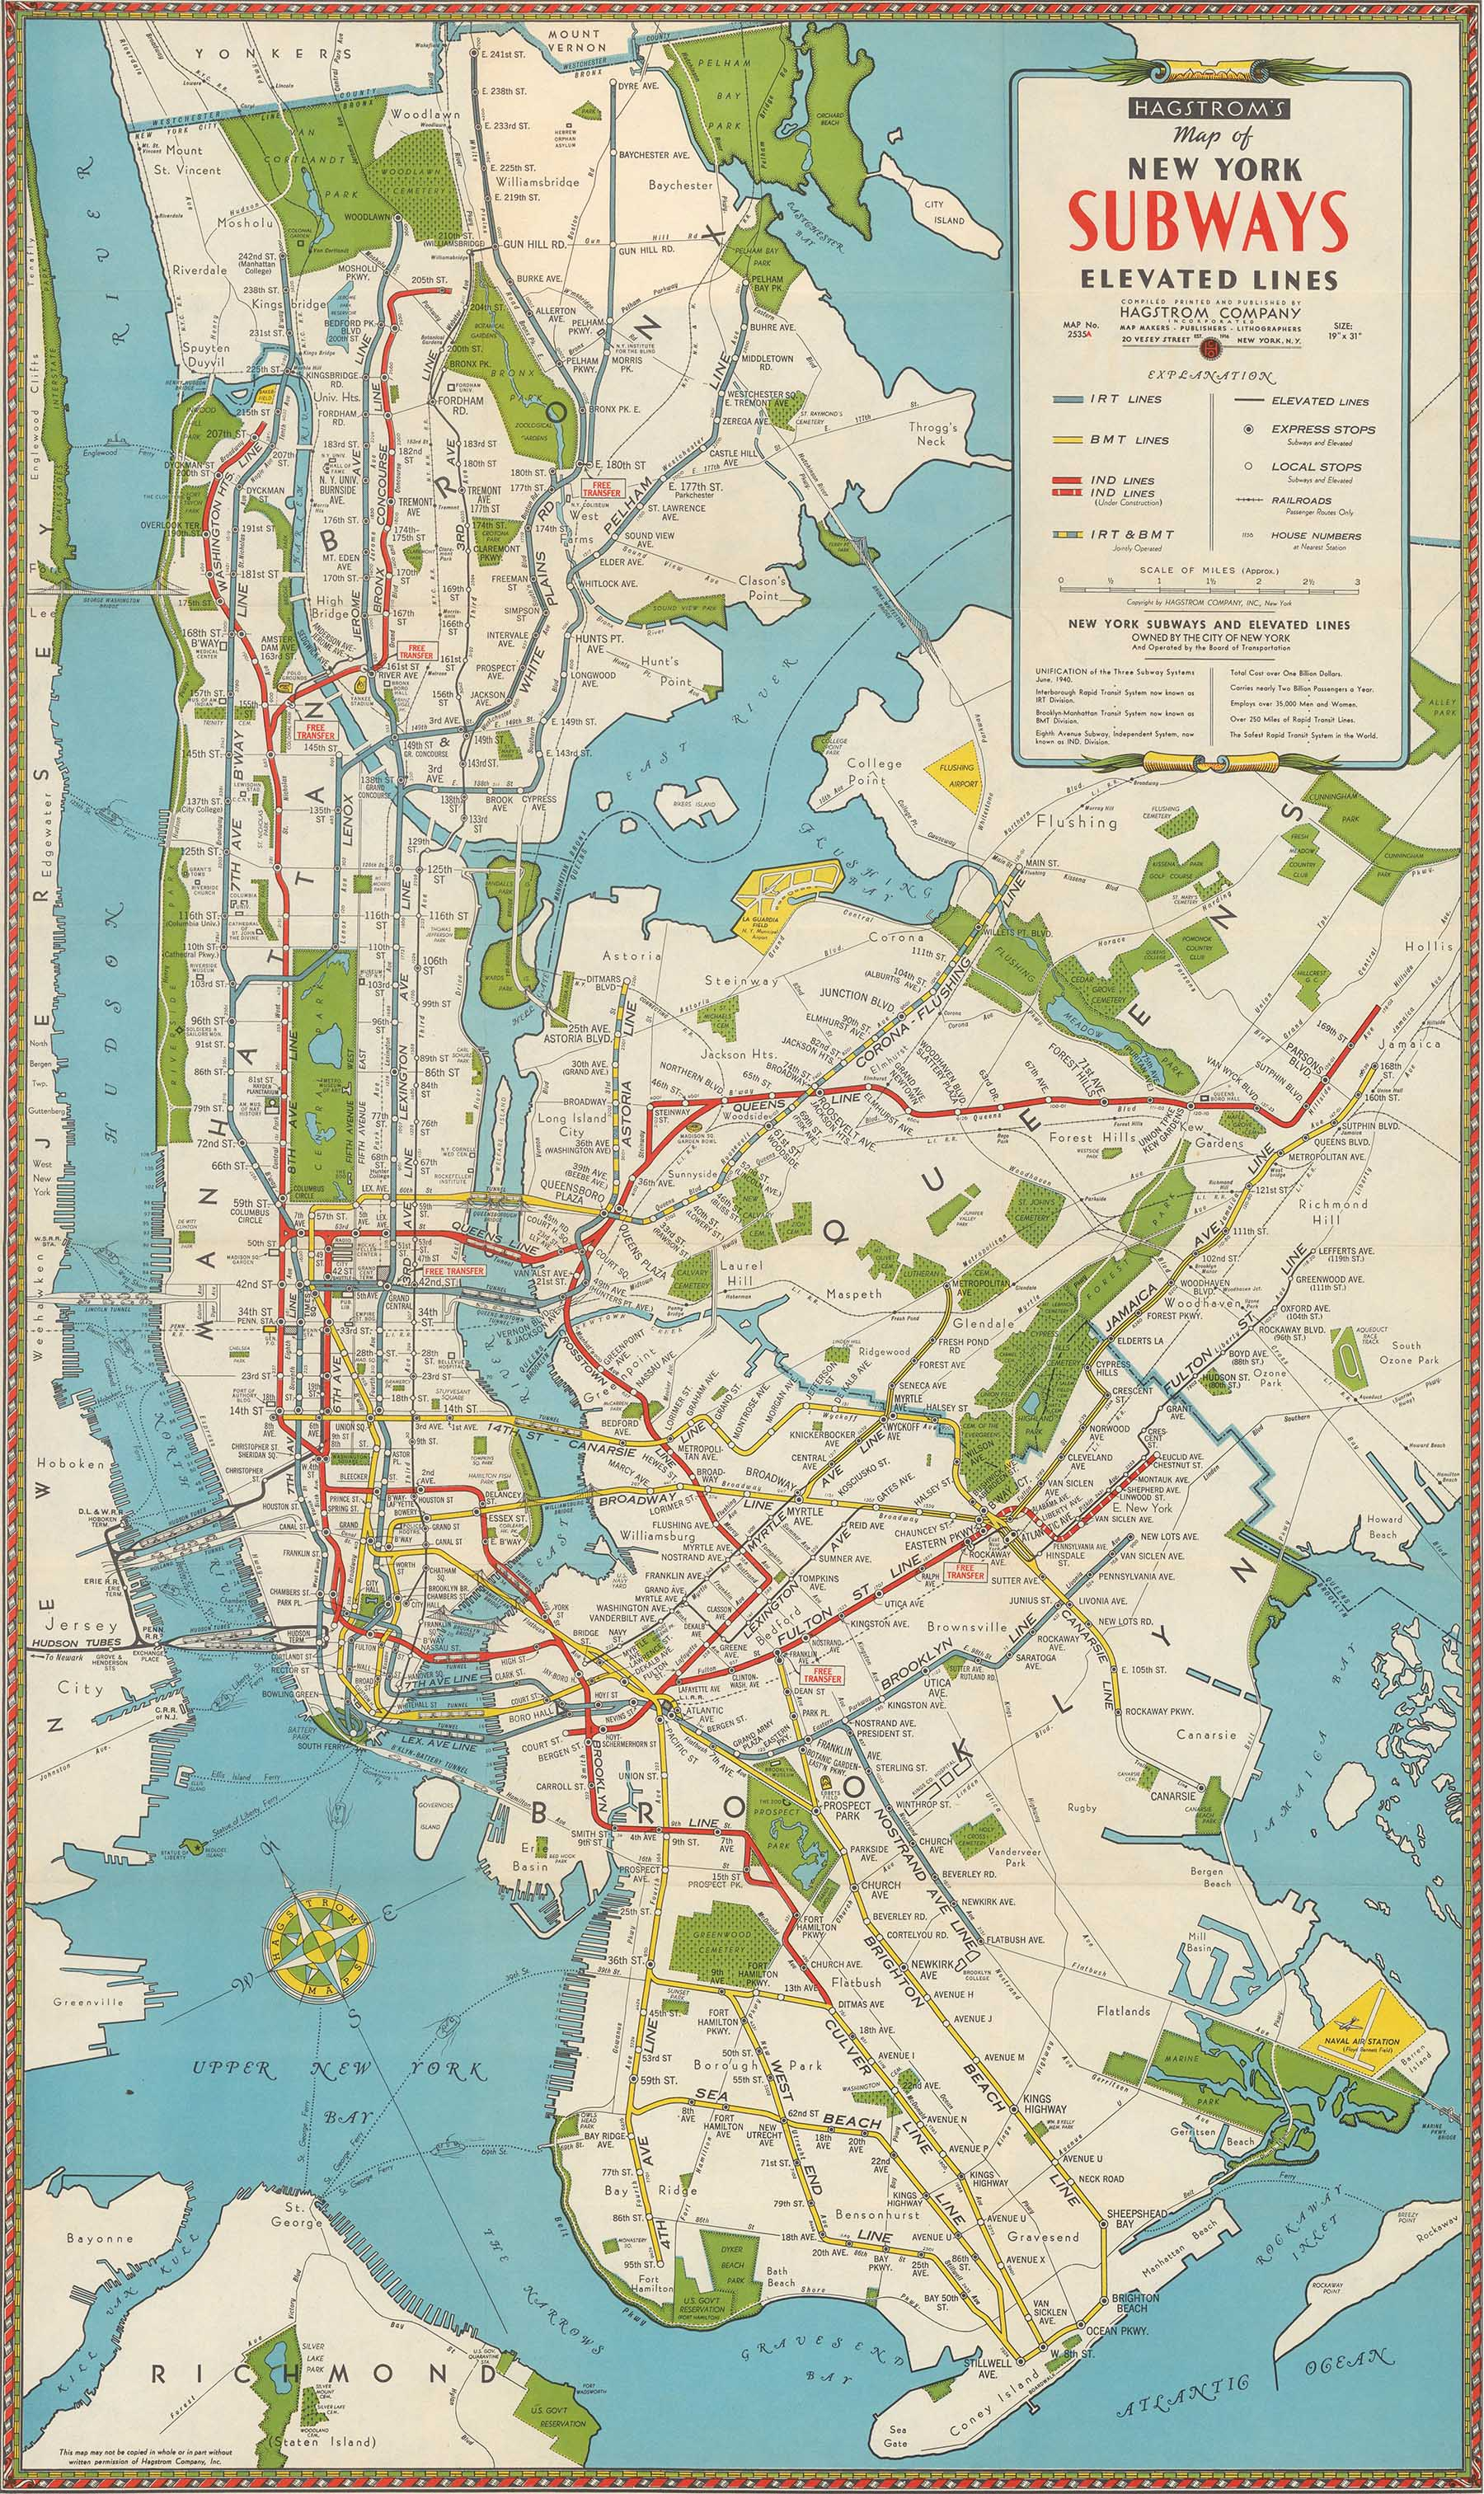 Nyc Subway Map Jpeg.1942 Subway Map Nyc Urbanism